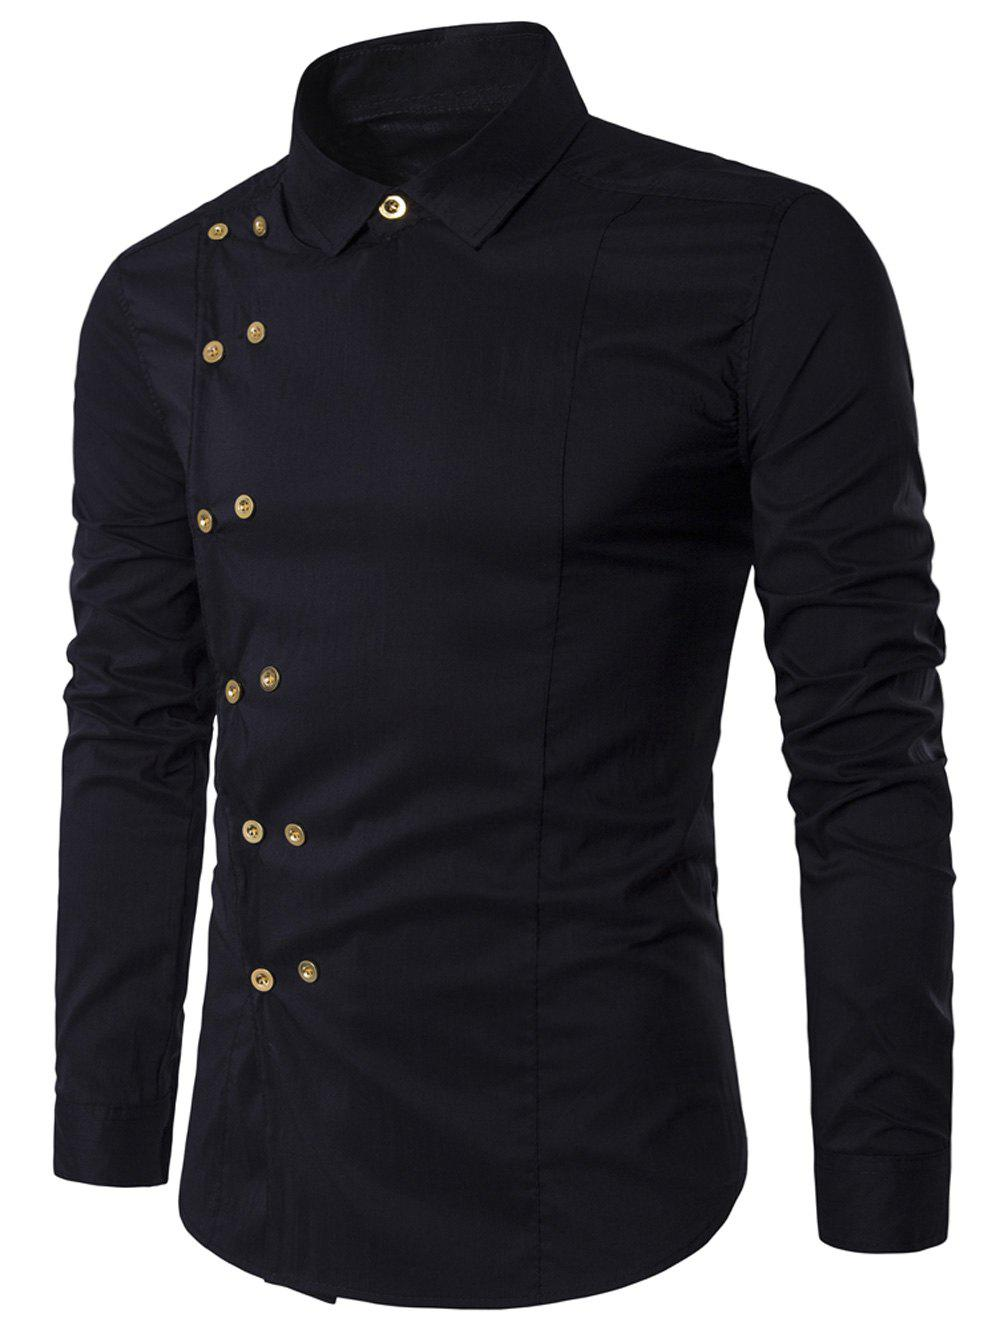 Black t shirt collar - Turndown Collar Long Sleeve Double Breasted Shirt Black L